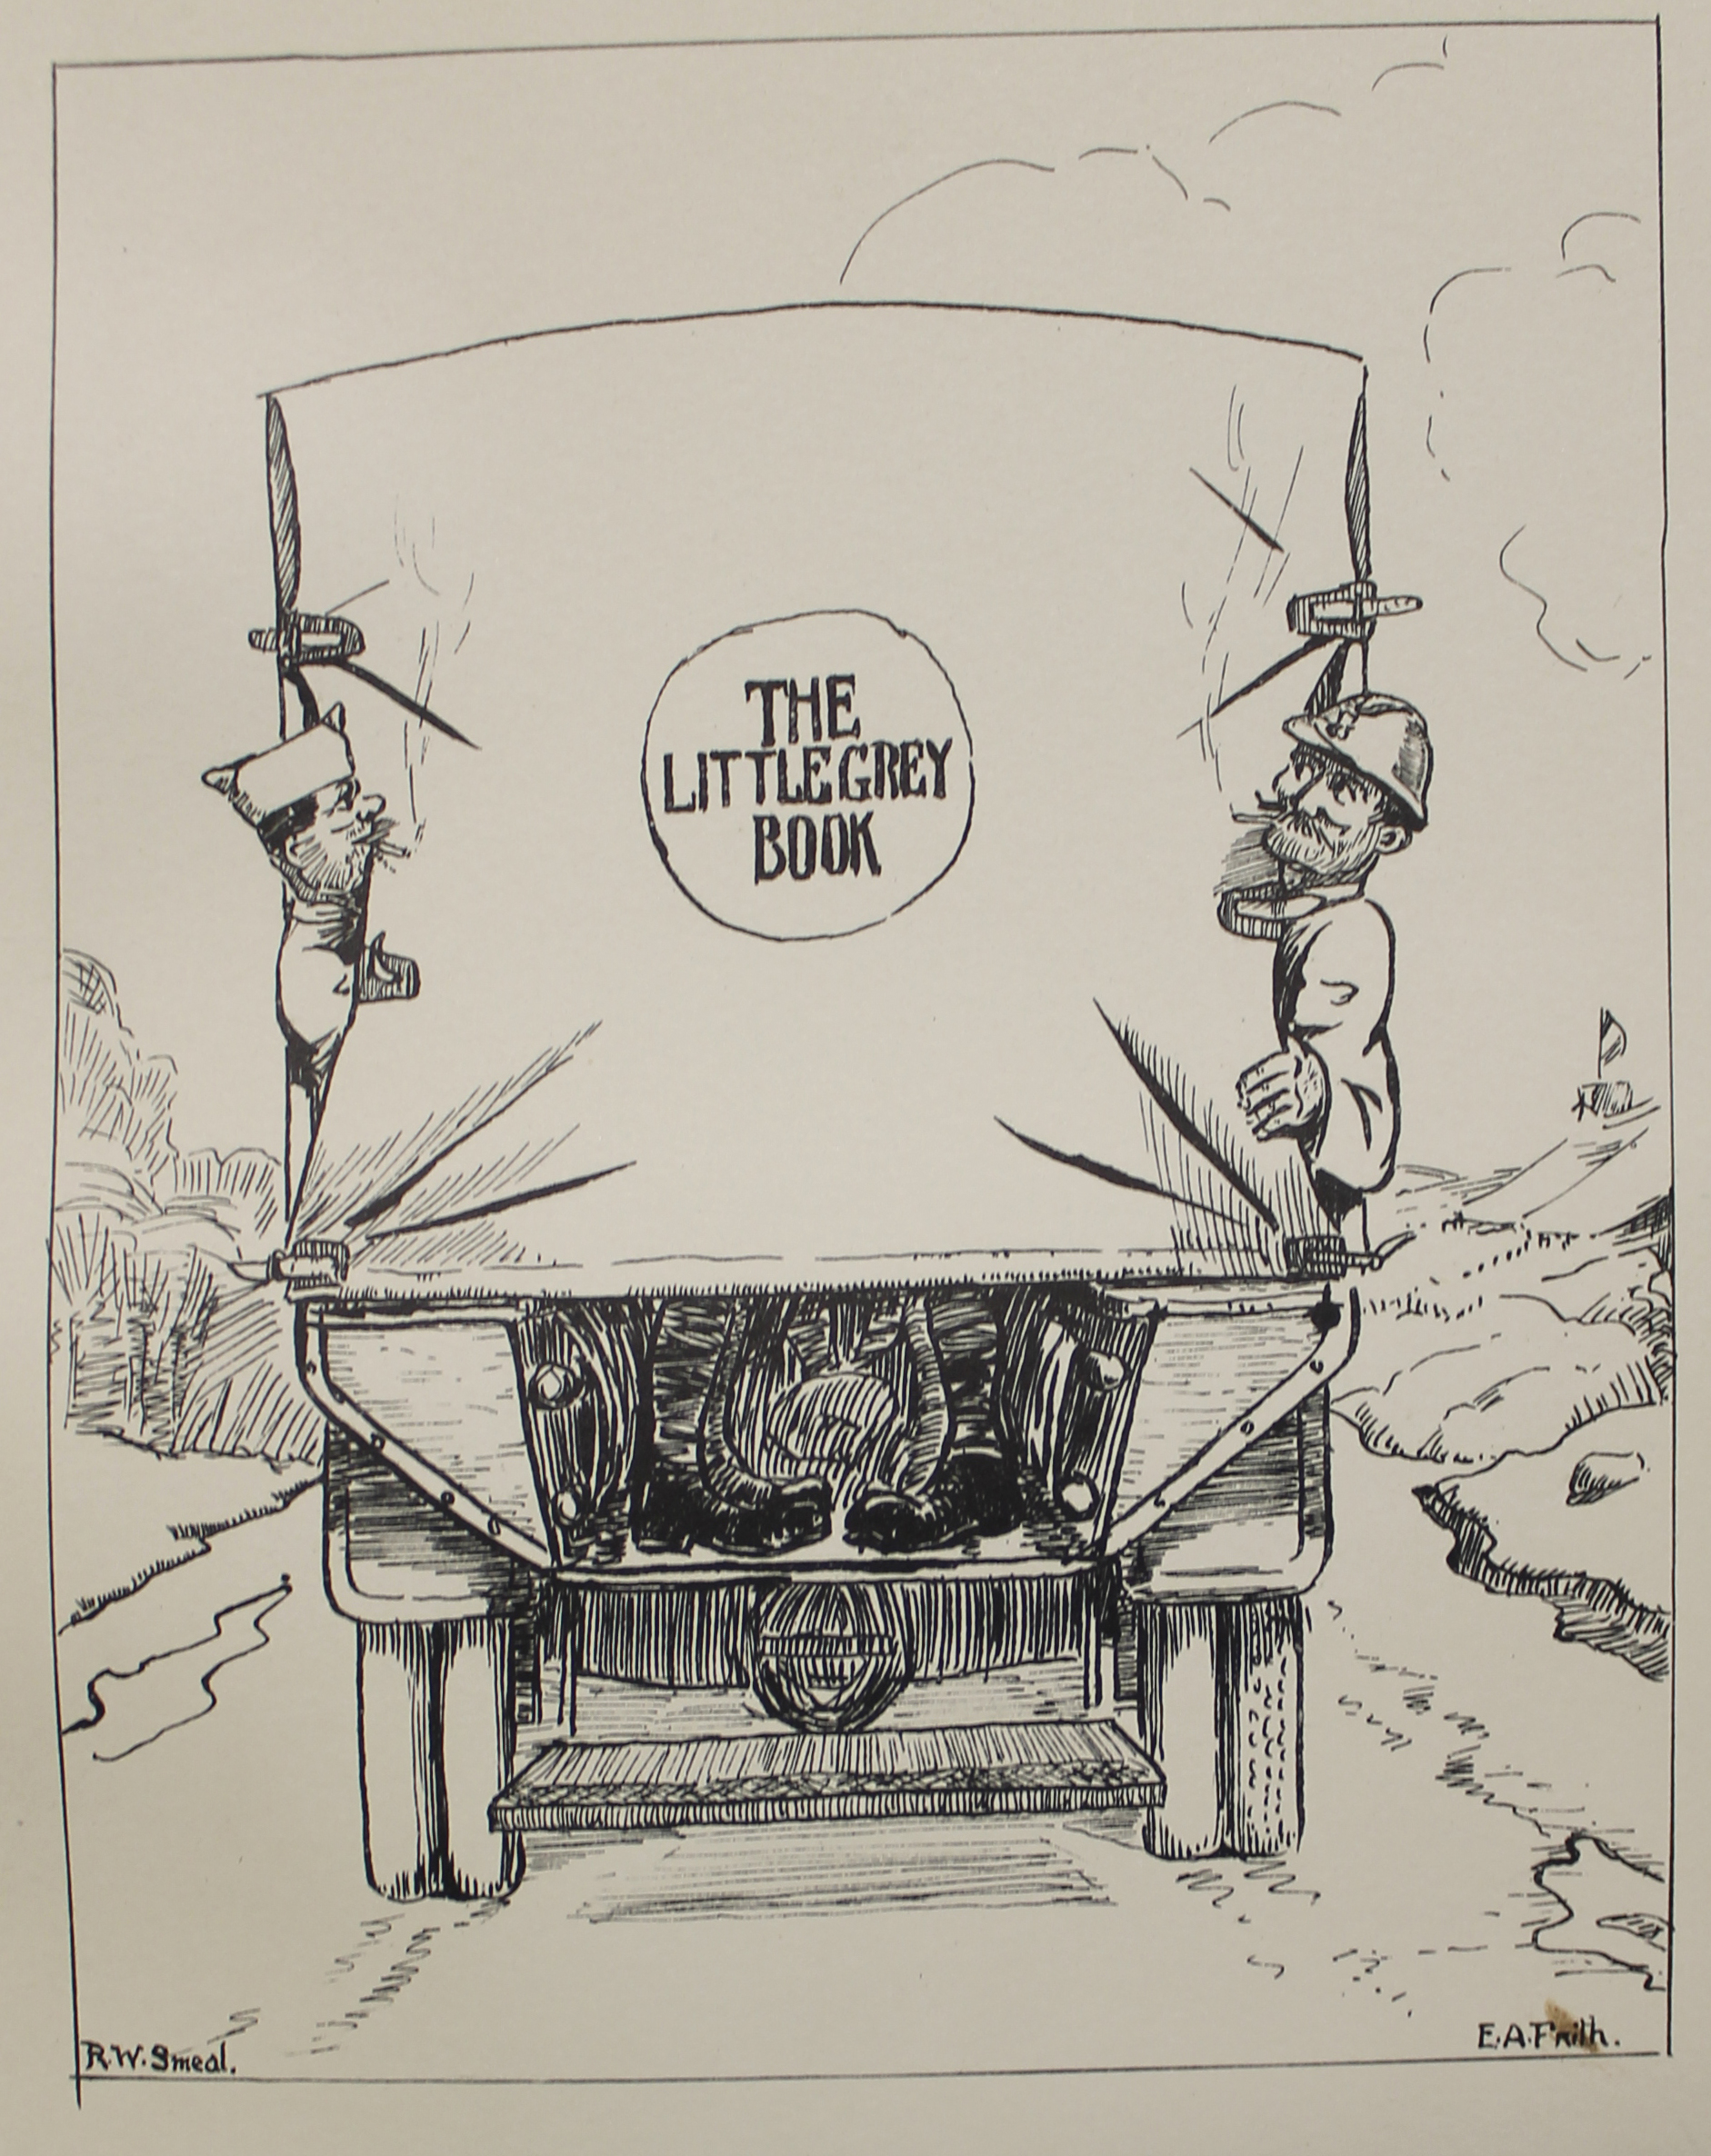 Illustration inside cover of The little grey book (being a souvenir volume of the S.S.A. 13)